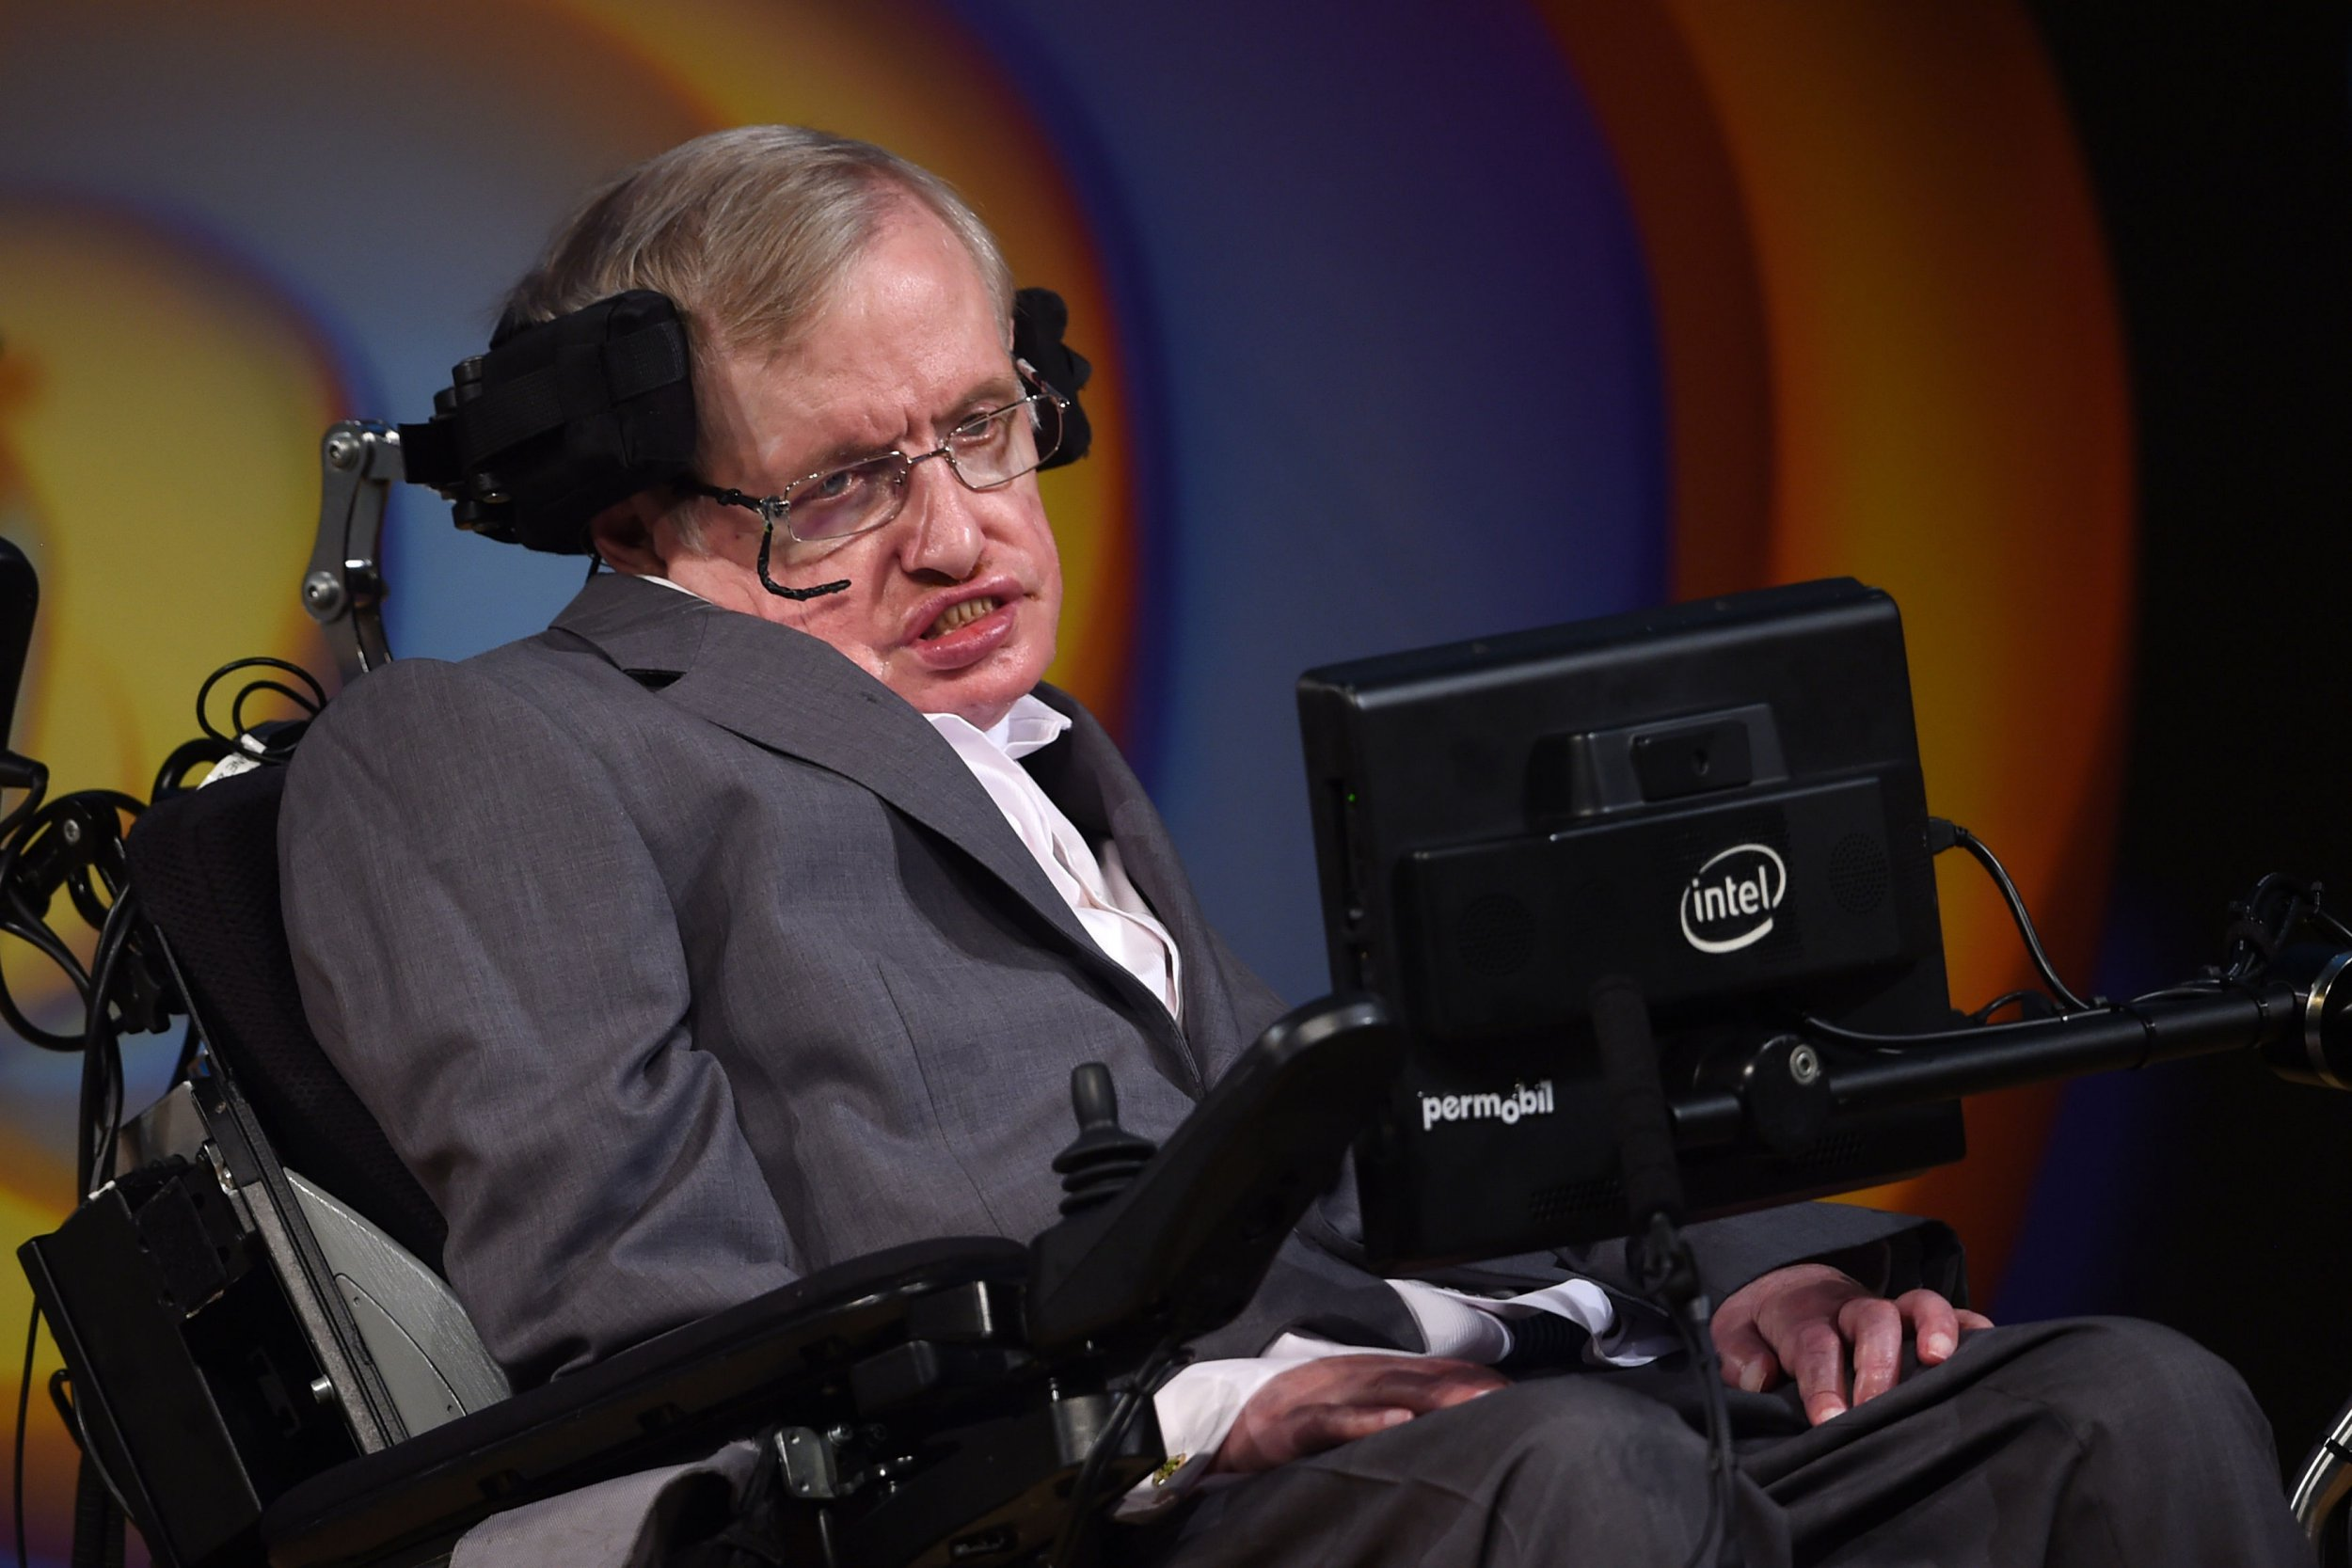 File photo dated 02/07/17 of Professor Stephen Hawking, as the renowned cosmologist's final theory, submitted before his death on March 14, has been published. PRESS ASSOCIATION Photo. Issue date: Wednesday May 2, 2018. Working with Belgian colleague Professor Thomas Hertog, Prof Hawking extended the weird notion of a holographic reality to explain how the universe came into being from the moment of the Big Bang. See PA story SCIENCE Hawking. Photo credit should read: Joe Giddens/PA Wire